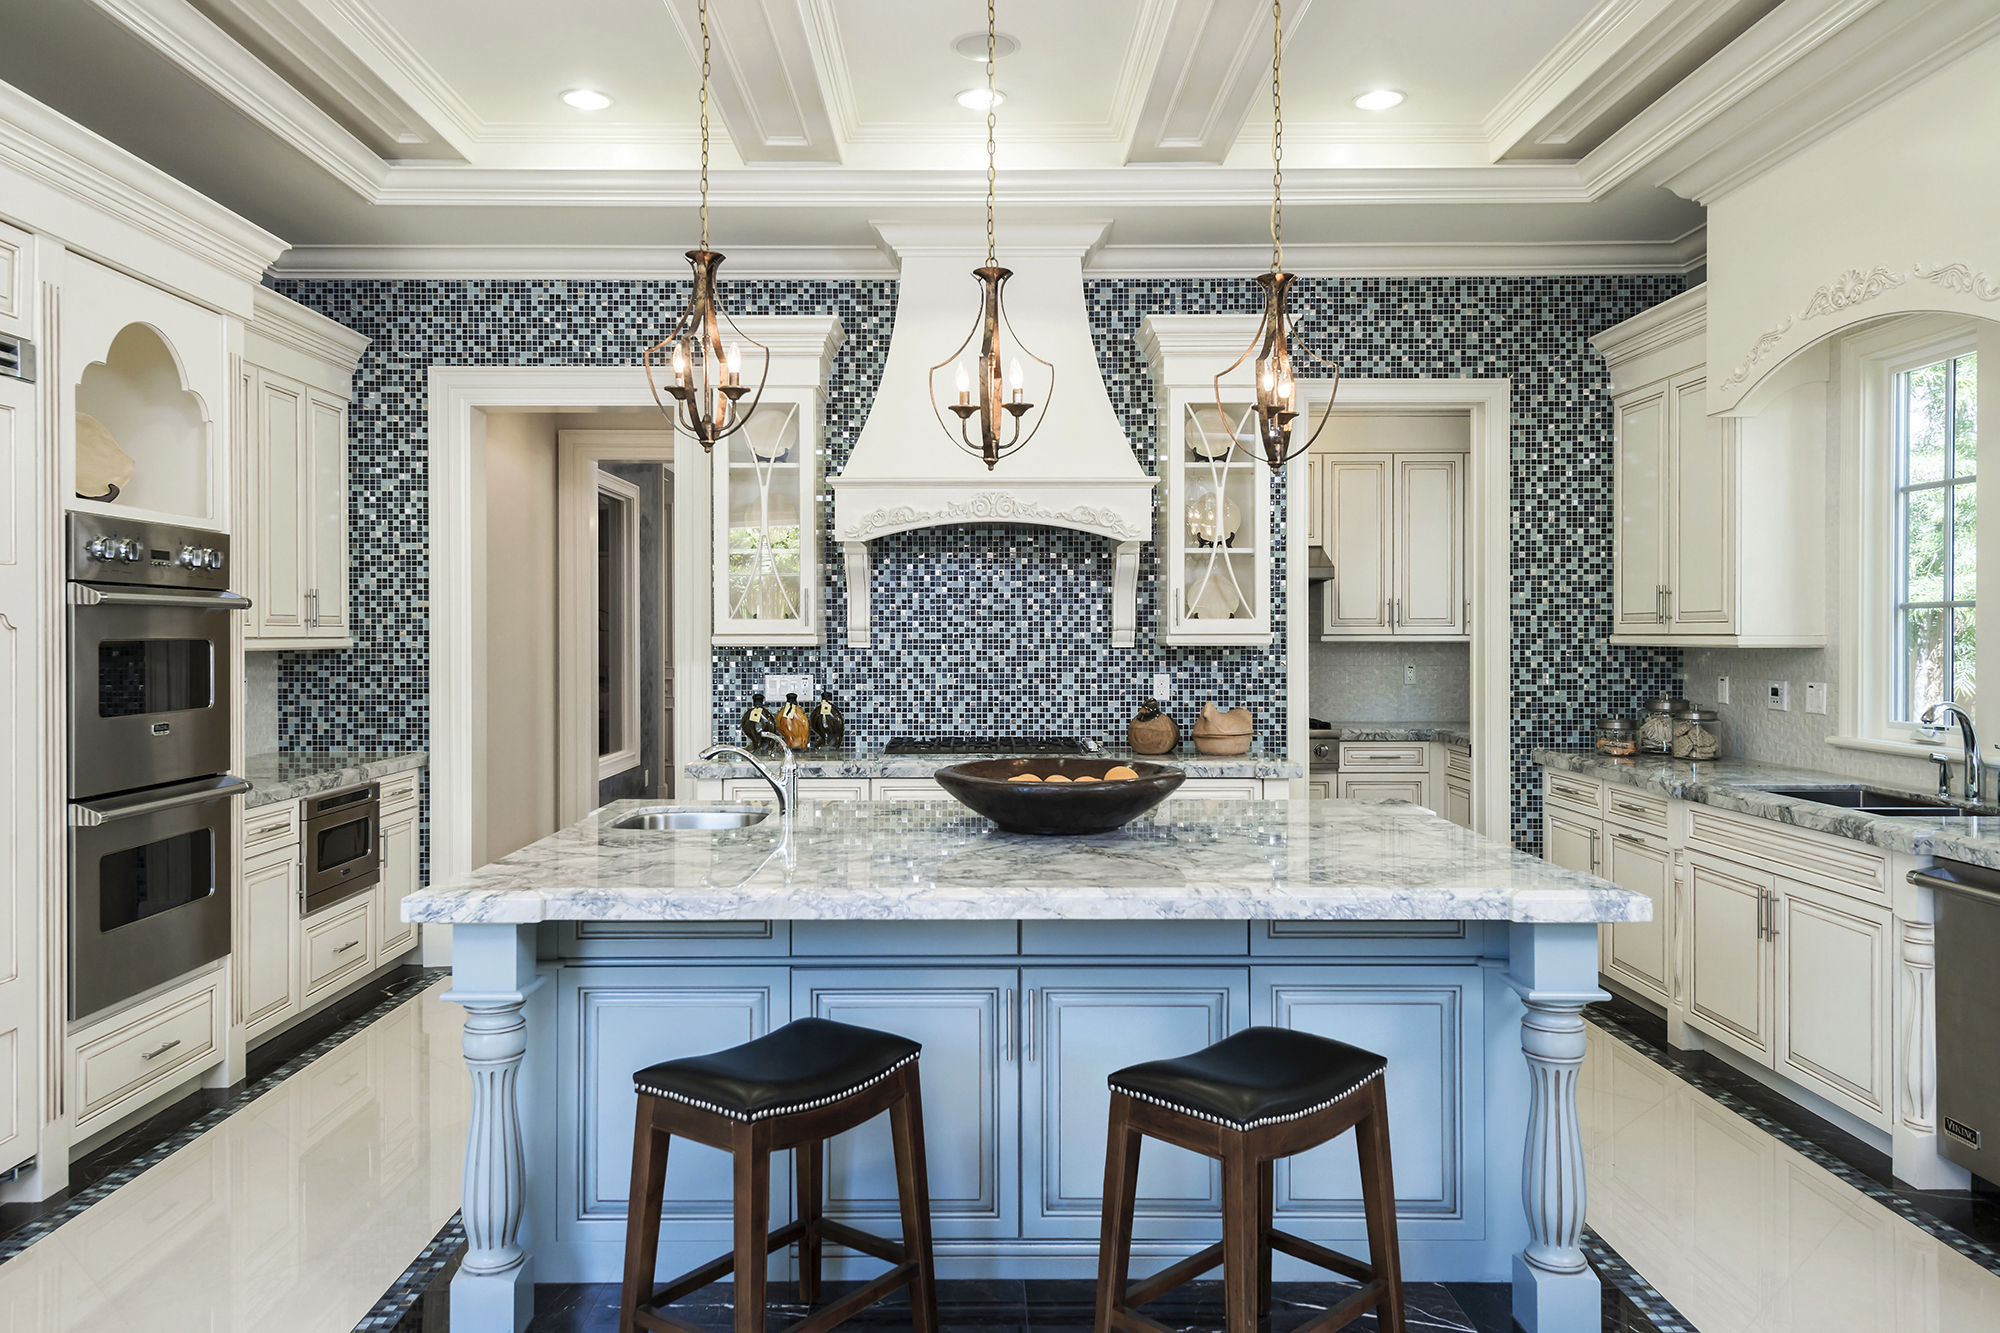 Grand-Kitchen-Blue-Island-Mosaic Backsplash.jpg